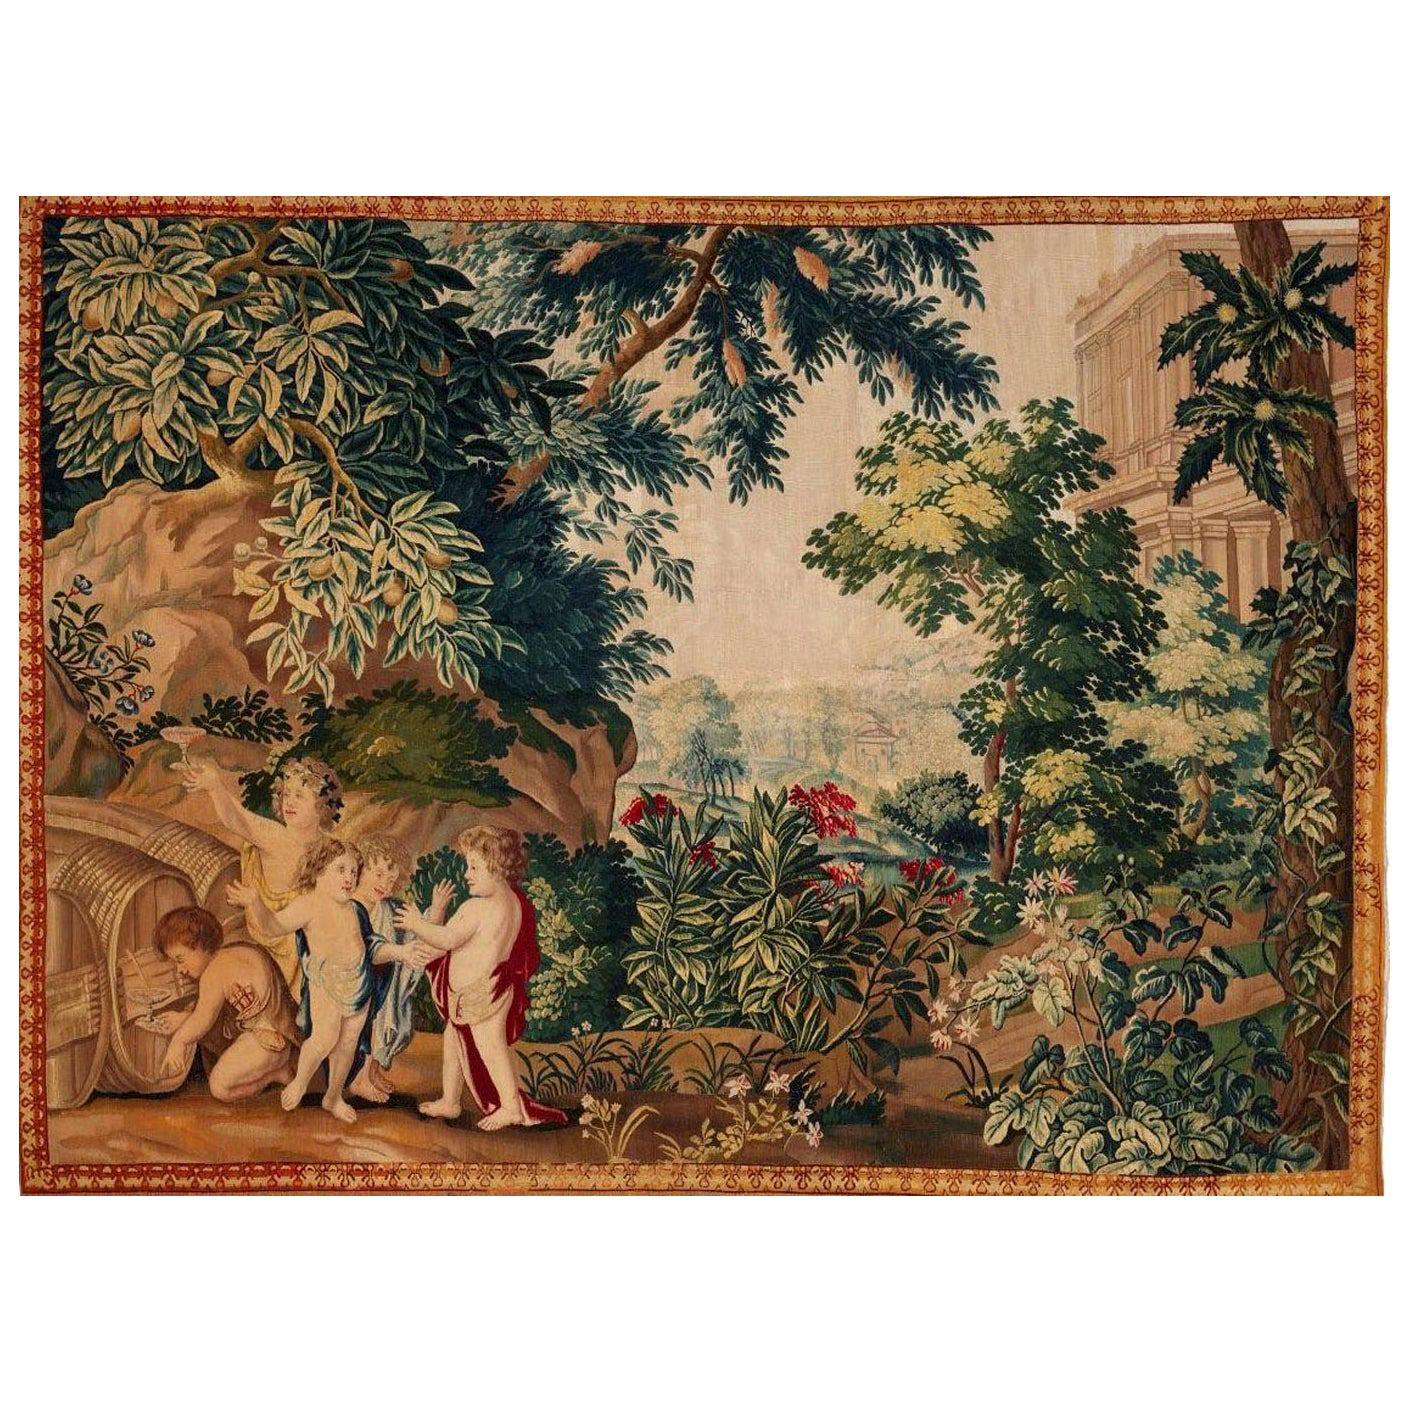 Brussels 18th Century Bacchanale Tapestry, circa 1760, 7'4 x 10'6